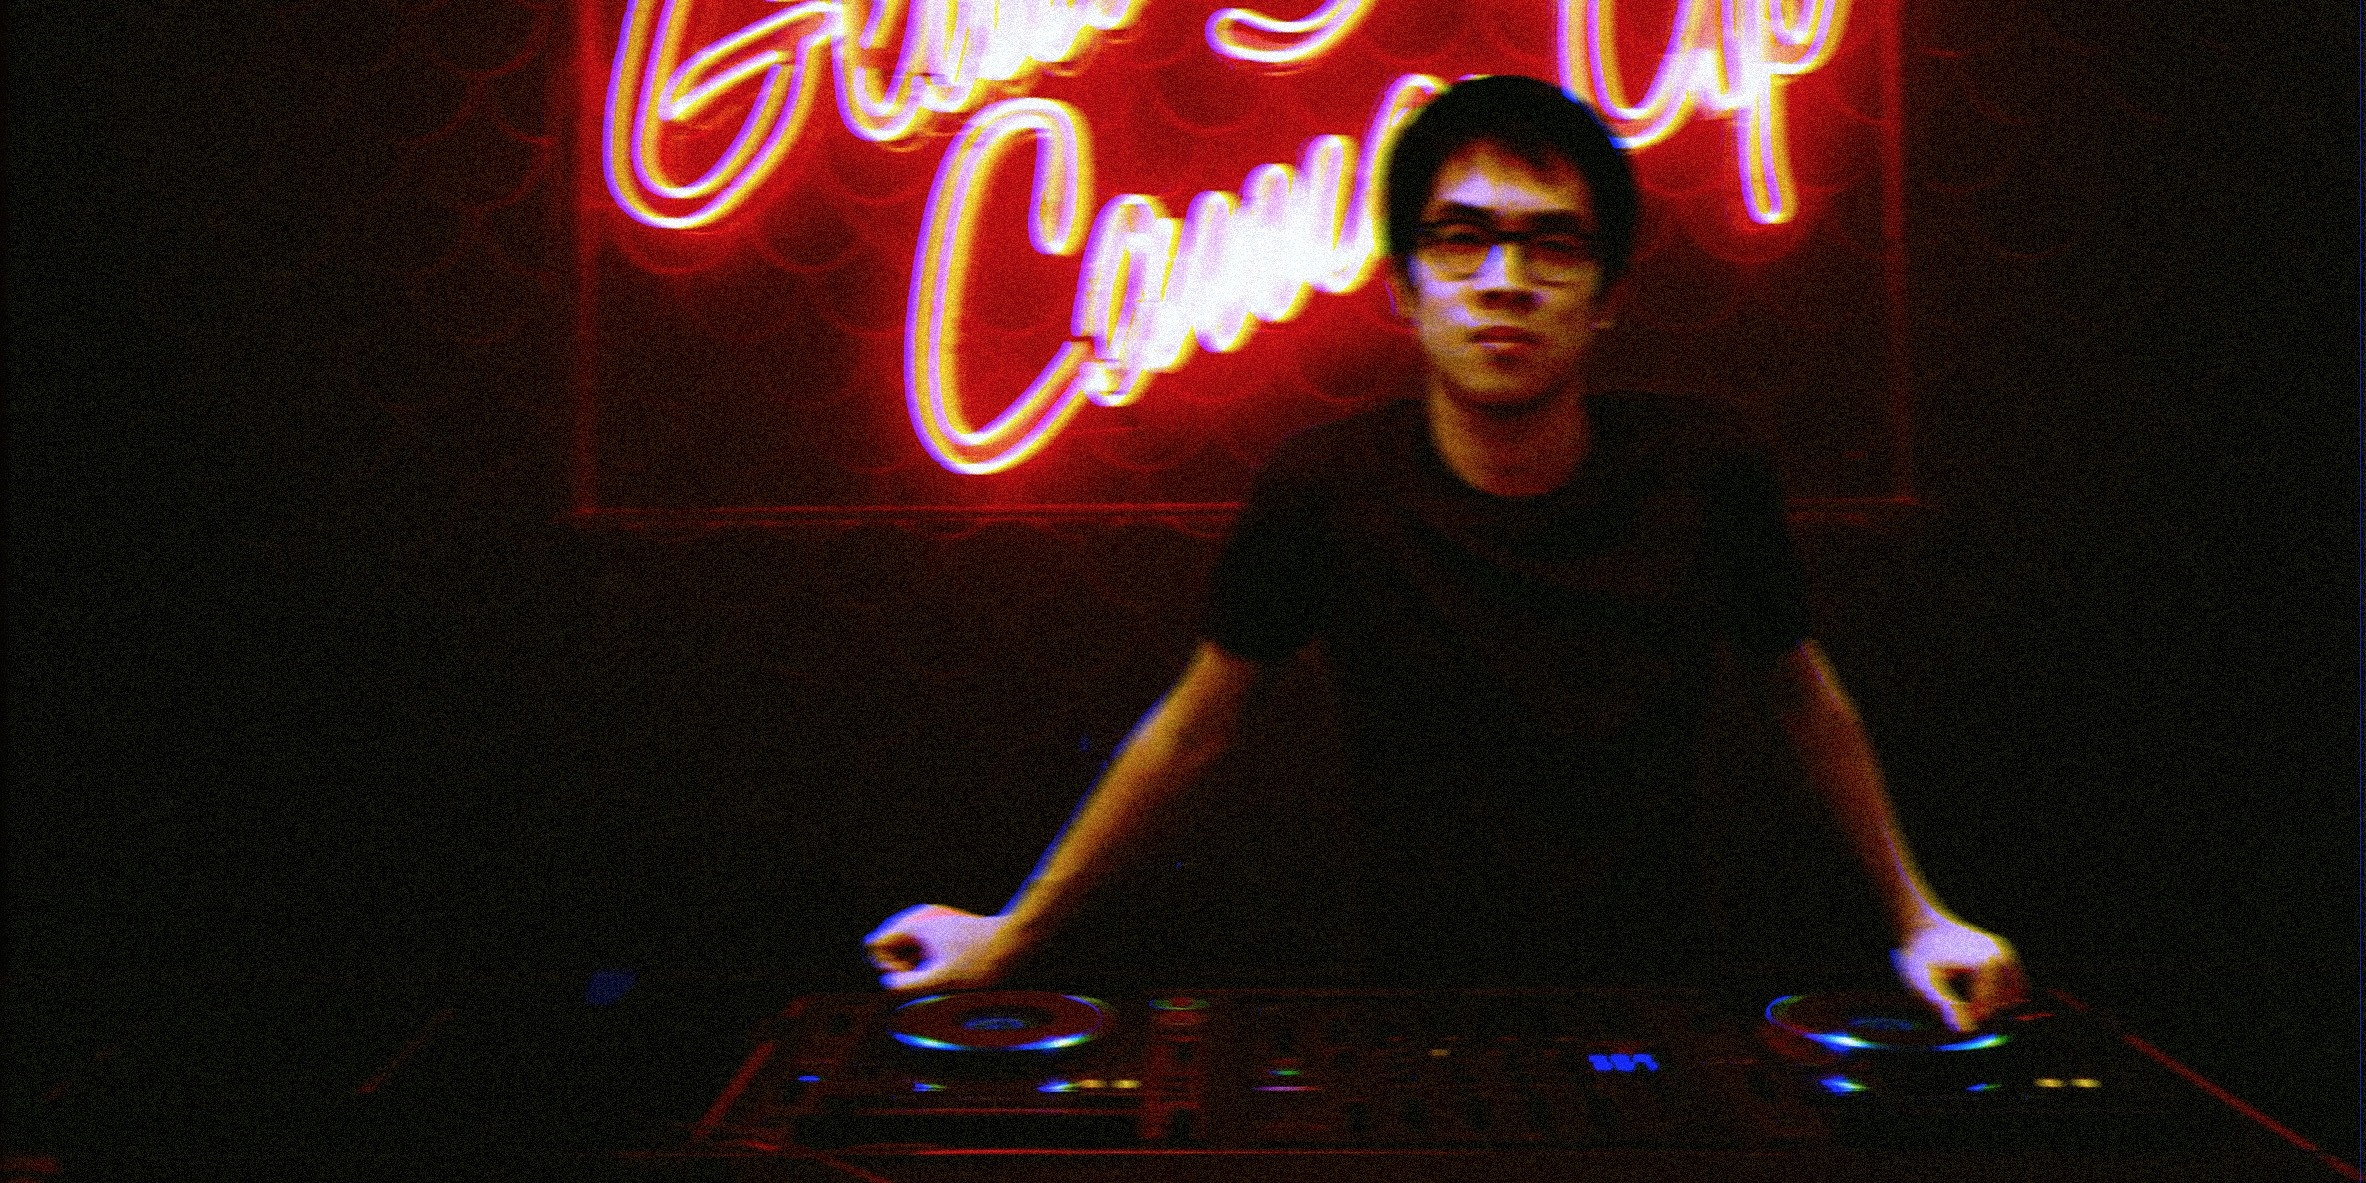 Charlie Lim abandons guitars and melancholy, announces new career in EDM